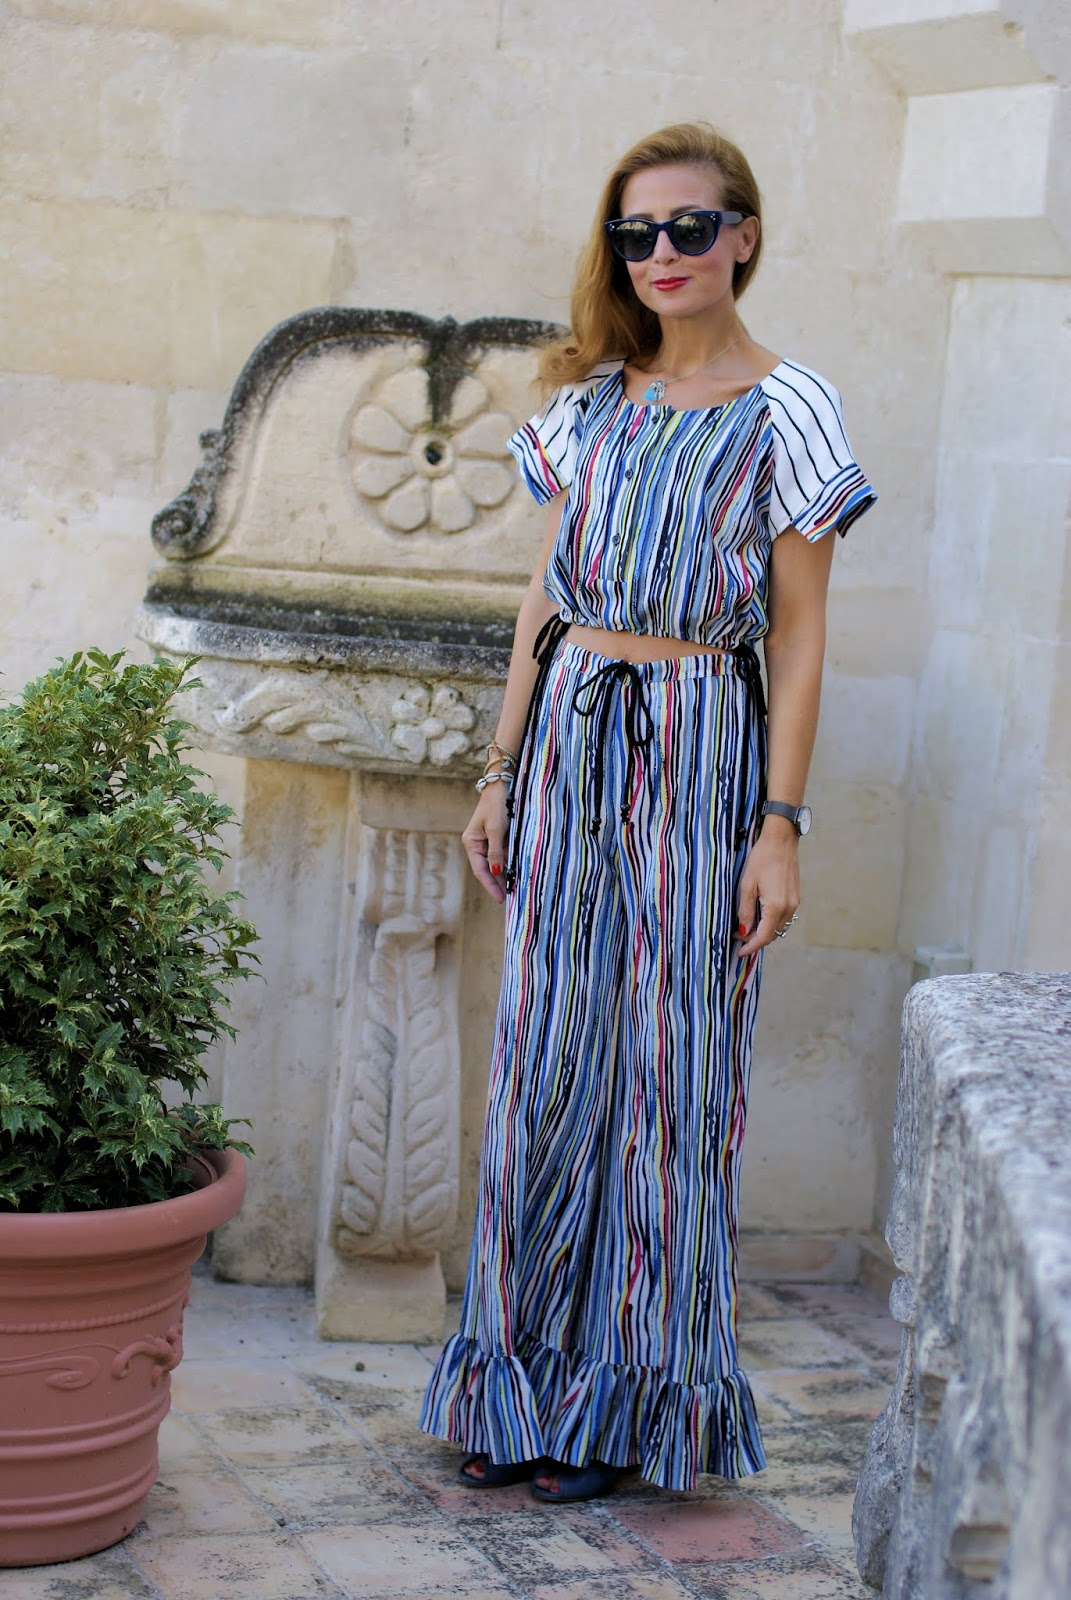 Ruffle palazzo pants and crop top: 70s inspired outfit on Fashion and Cookies fashion blog, fashion blogger style